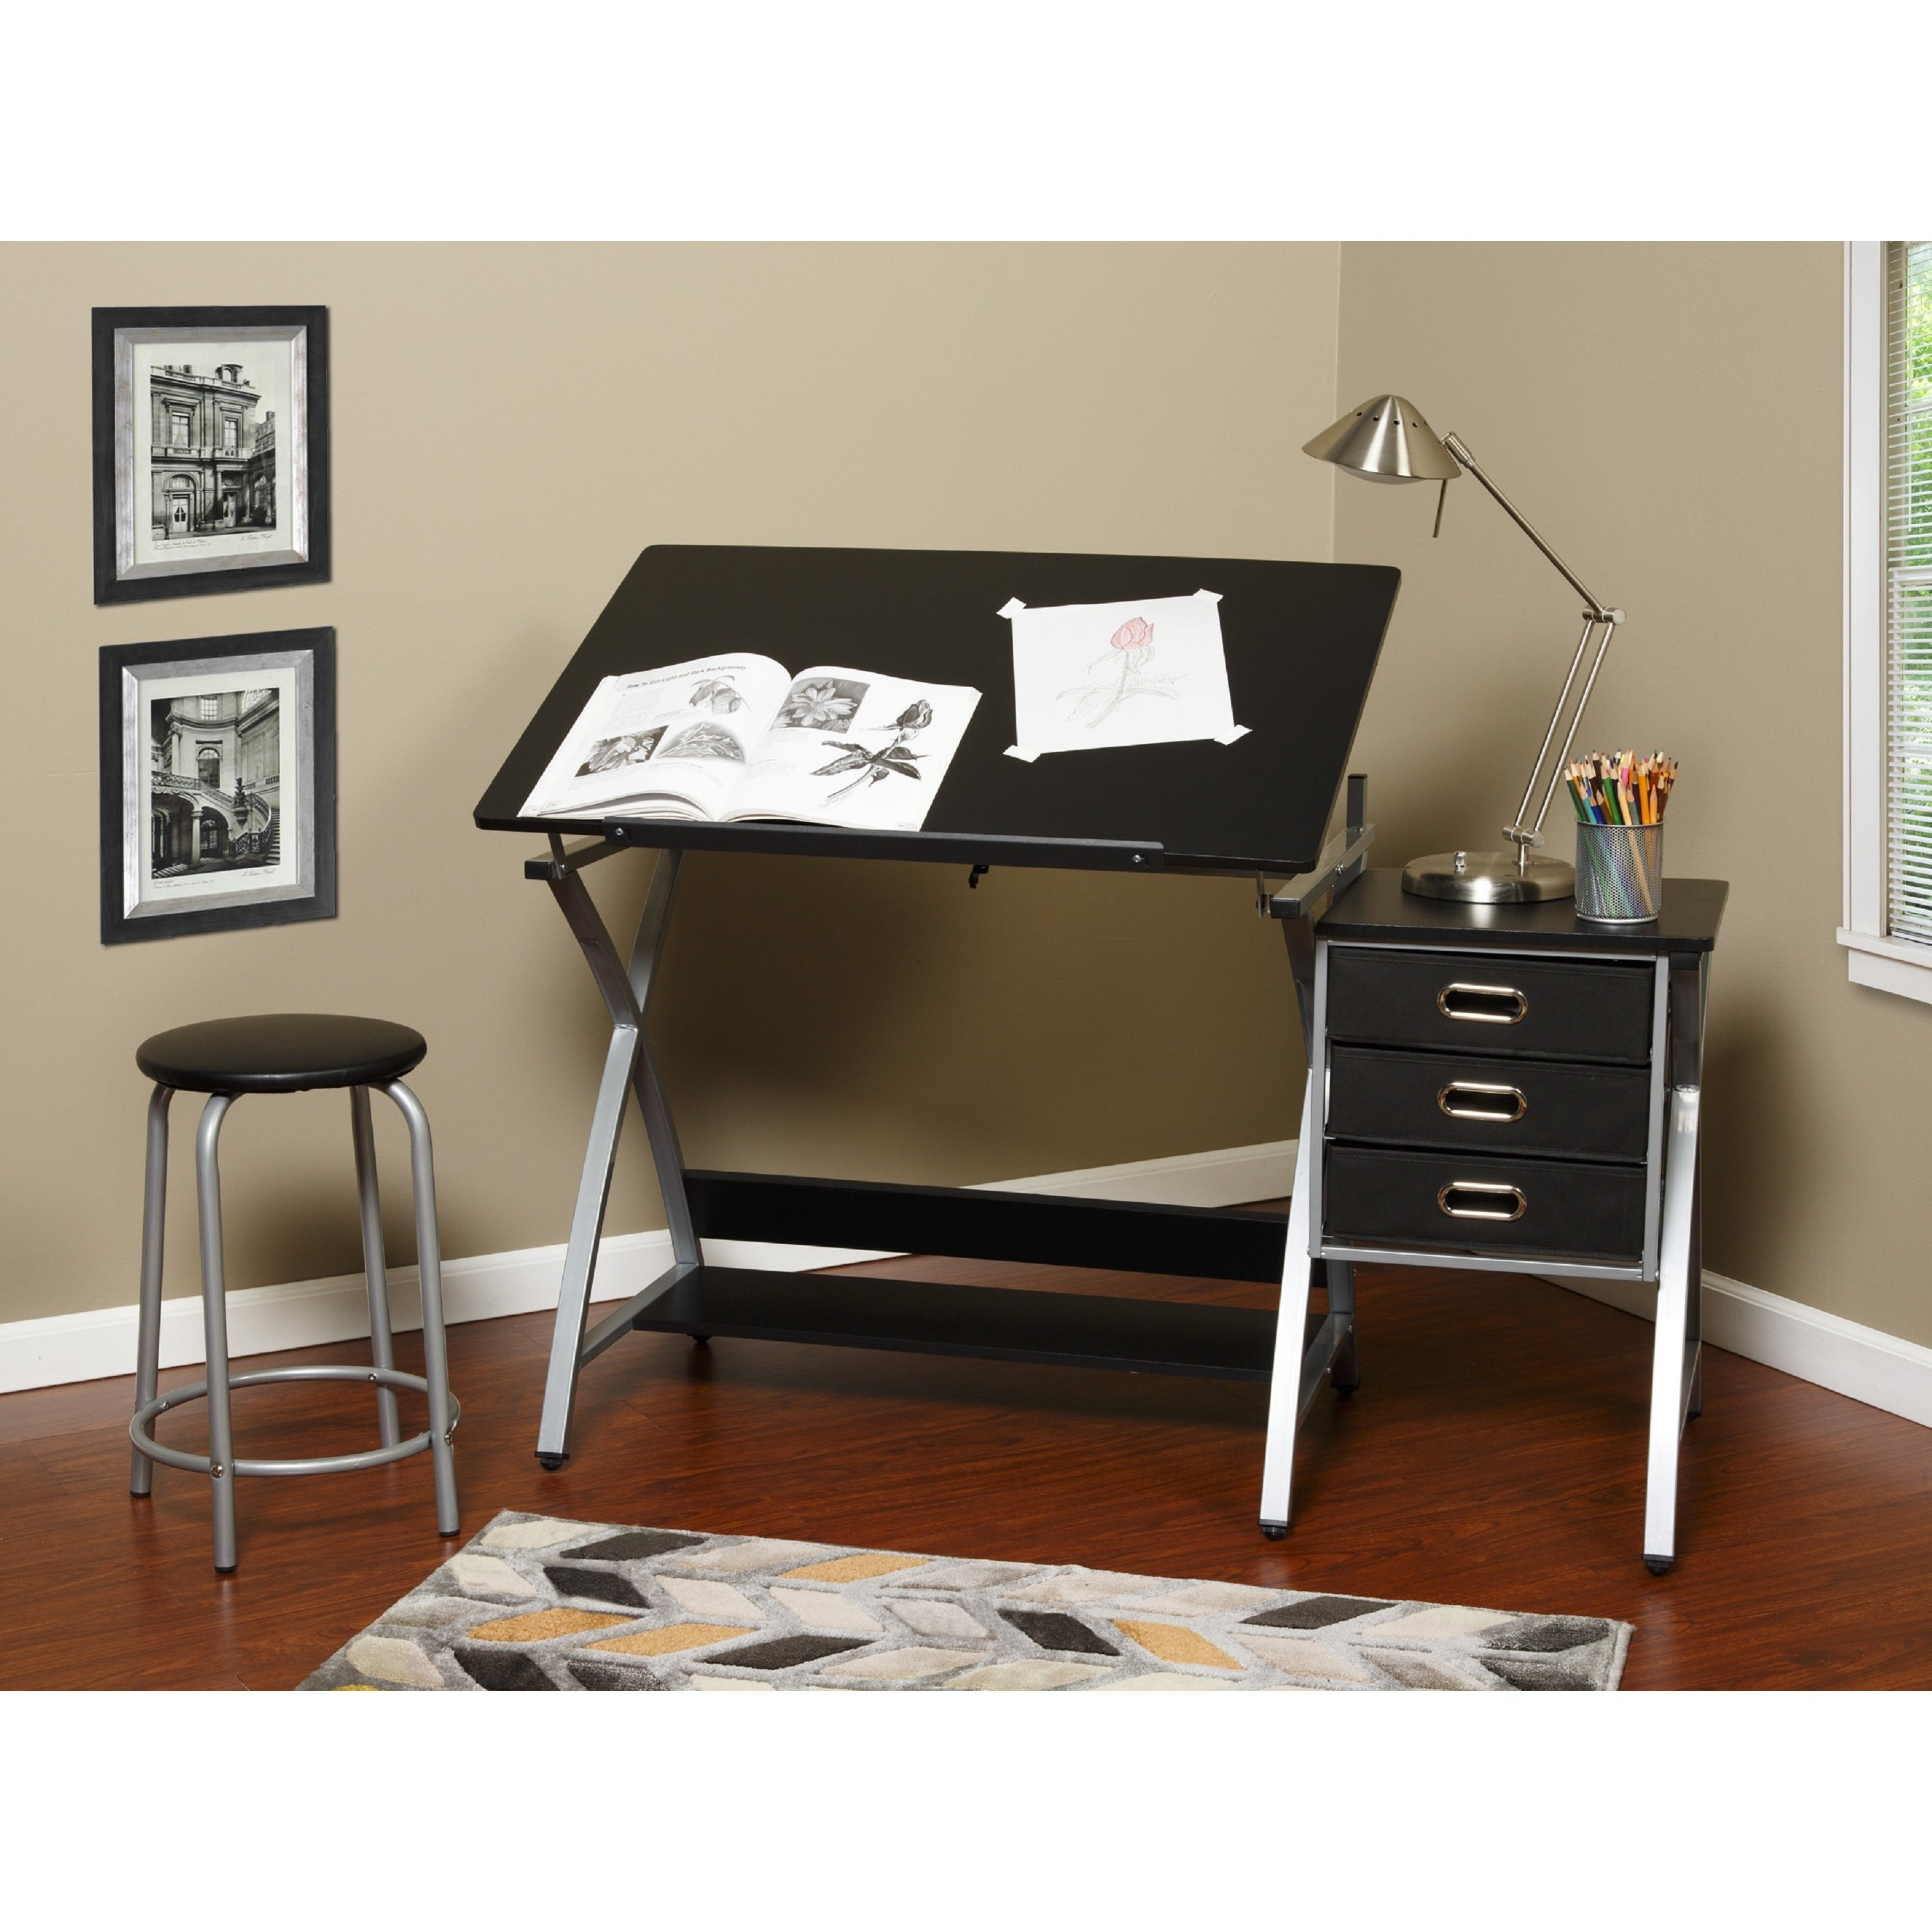 Shop OneSpace 50 CS03 Black And Silver Drafting Craft Hobby Table With  Stool   Free Shipping Today   Overstock.com   12298607